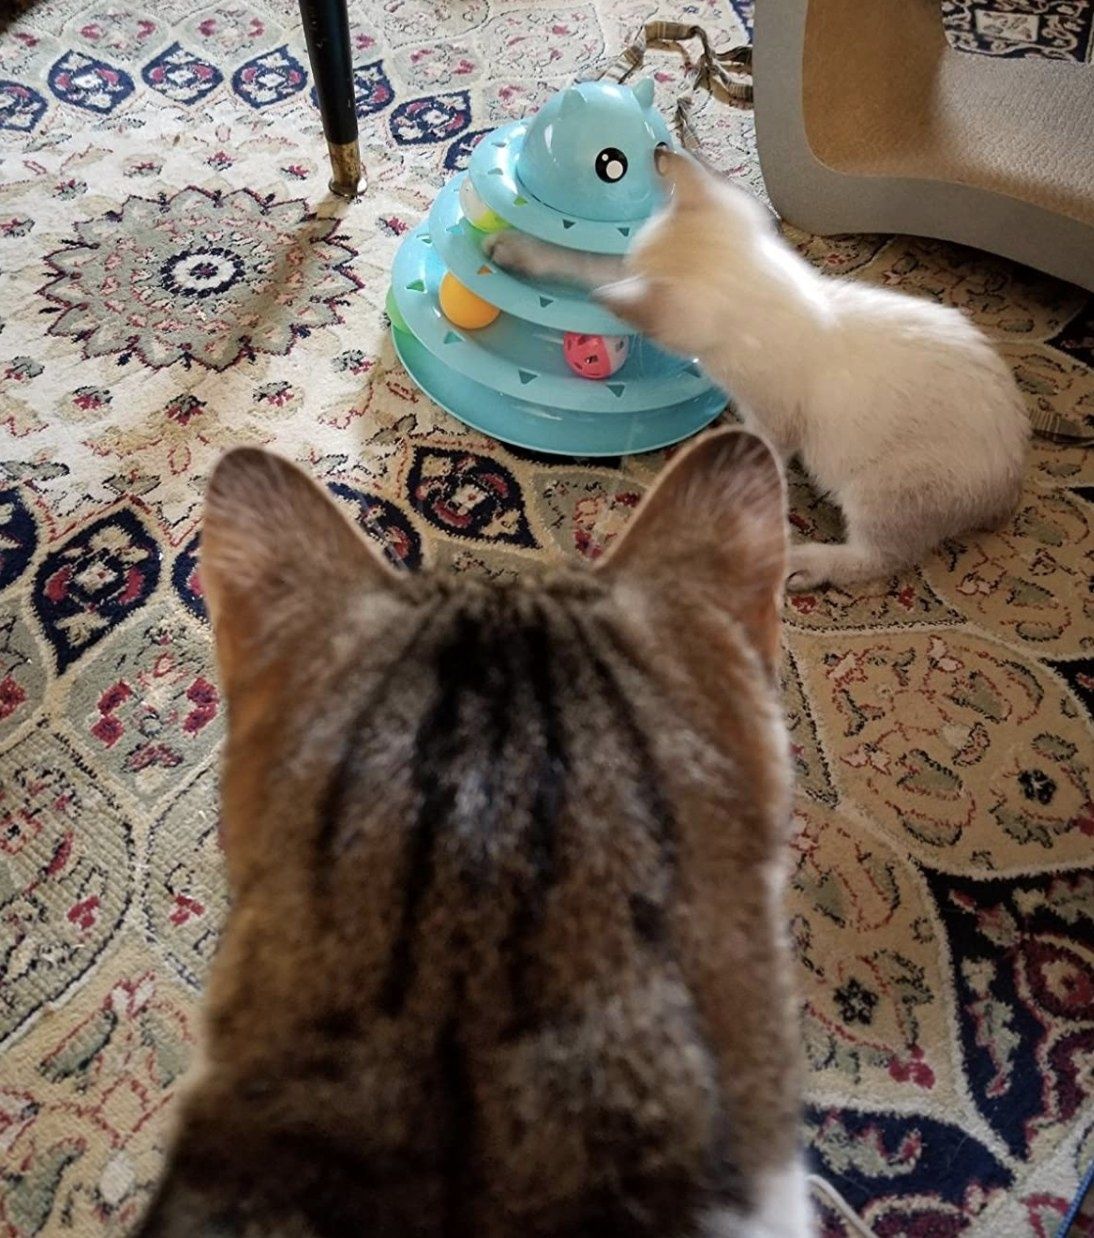 a striped cat looking at a white kitten plat with w triple tired blue cat toy